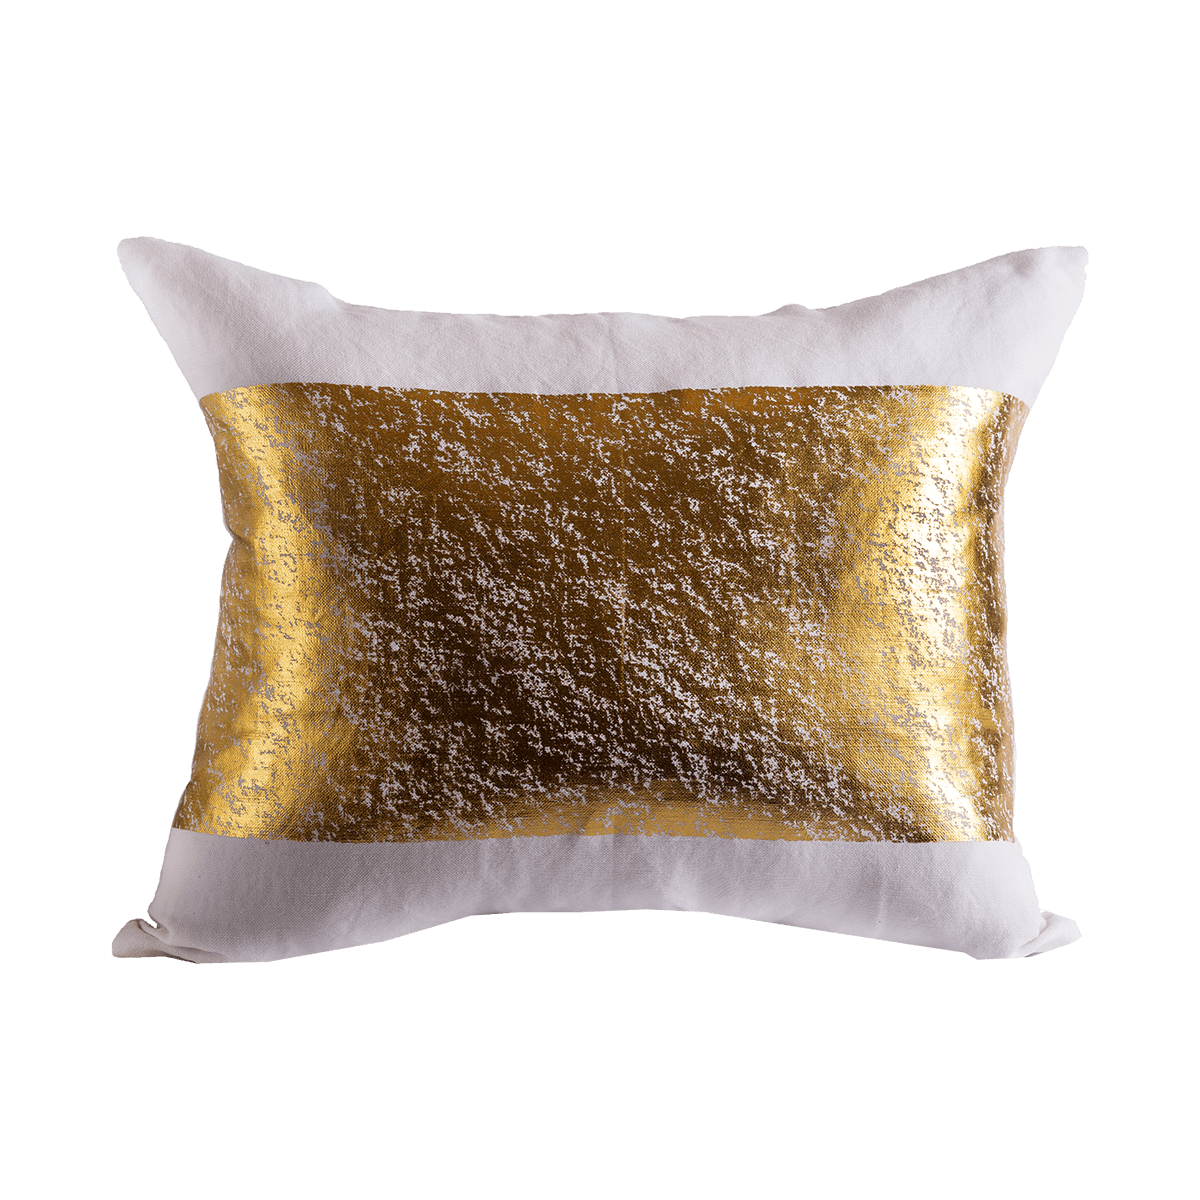 Gold Throw Pillows | Couch Pillow Covers | Purple Lumbar Pillow